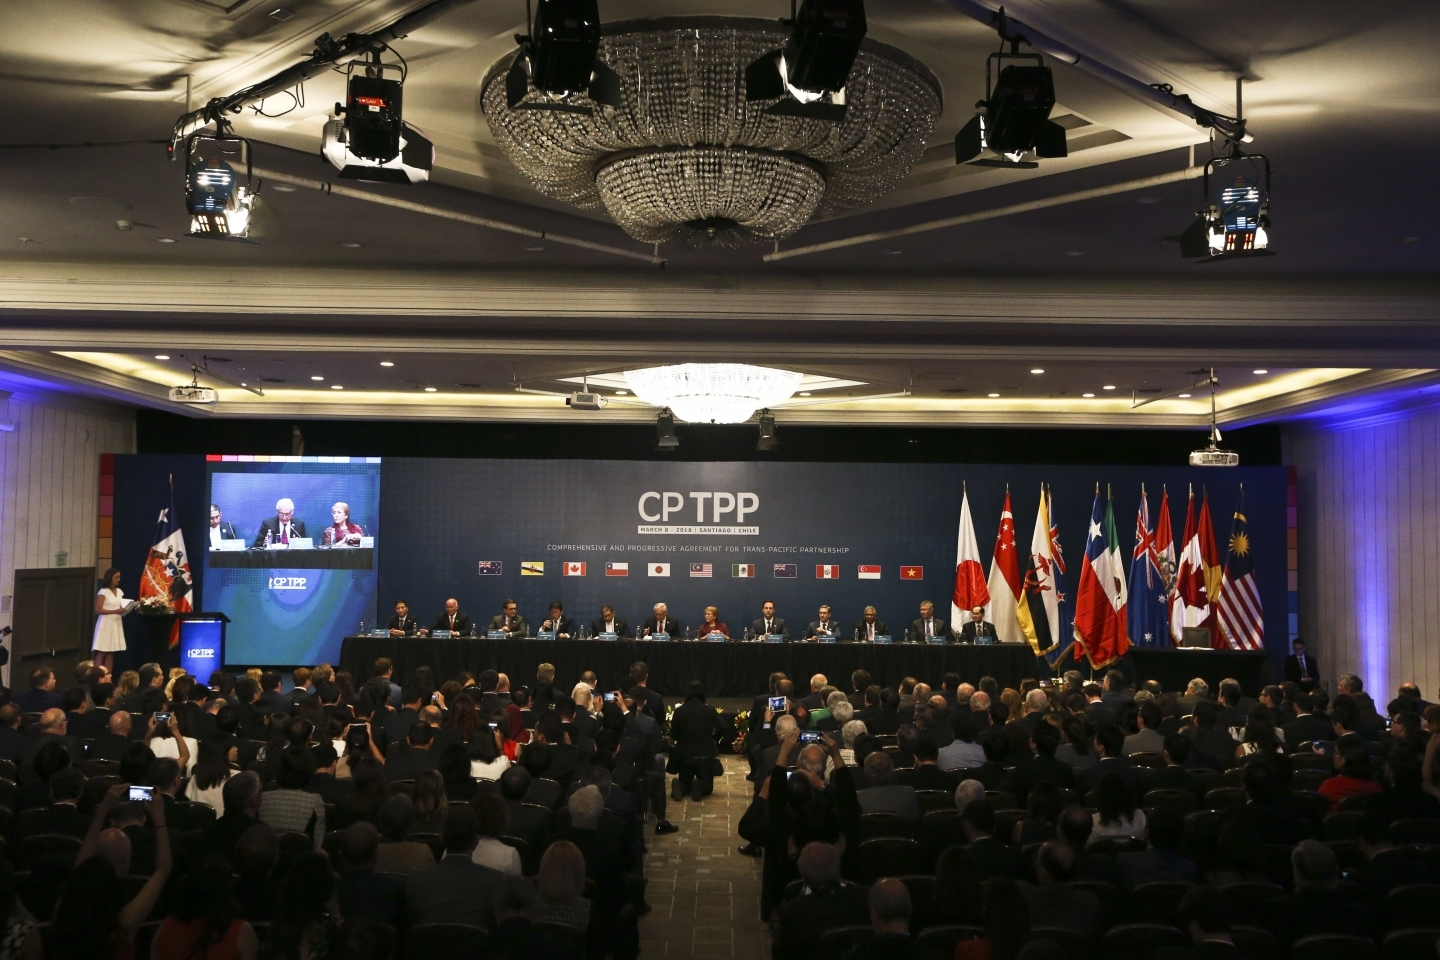 Representatives from 11 countries take part in the Comprehensive and Progressive Agreement for Trans-Pacific Partnership signing ceremony on March 8, 2018. (AP Photo/Esteban Felix)